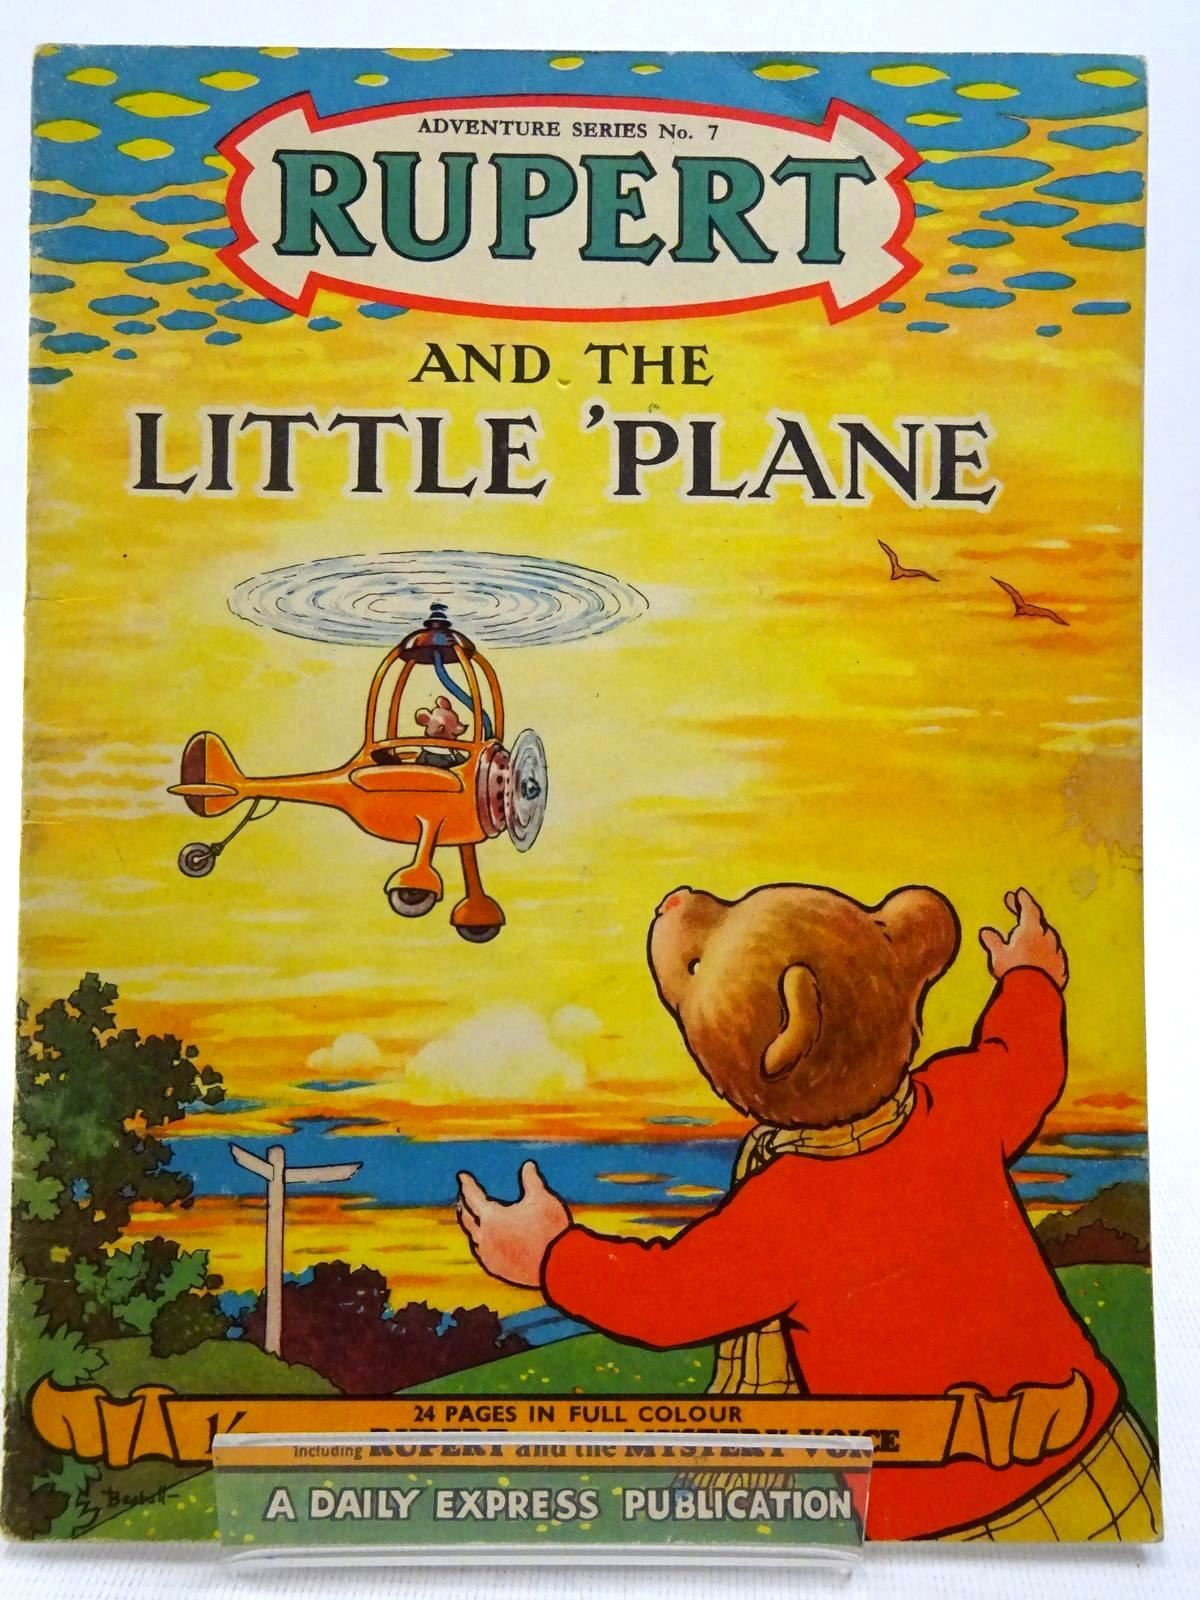 Photo of RUPERT ADVENTURE SERIES No. 7 - RUPERT AND THE LITTLE PLANE written by Bestall, Alfred illustrated by Bestall, Alfred published by Daily Express (STOCK CODE: 2128600)  for sale by Stella & Rose's Books